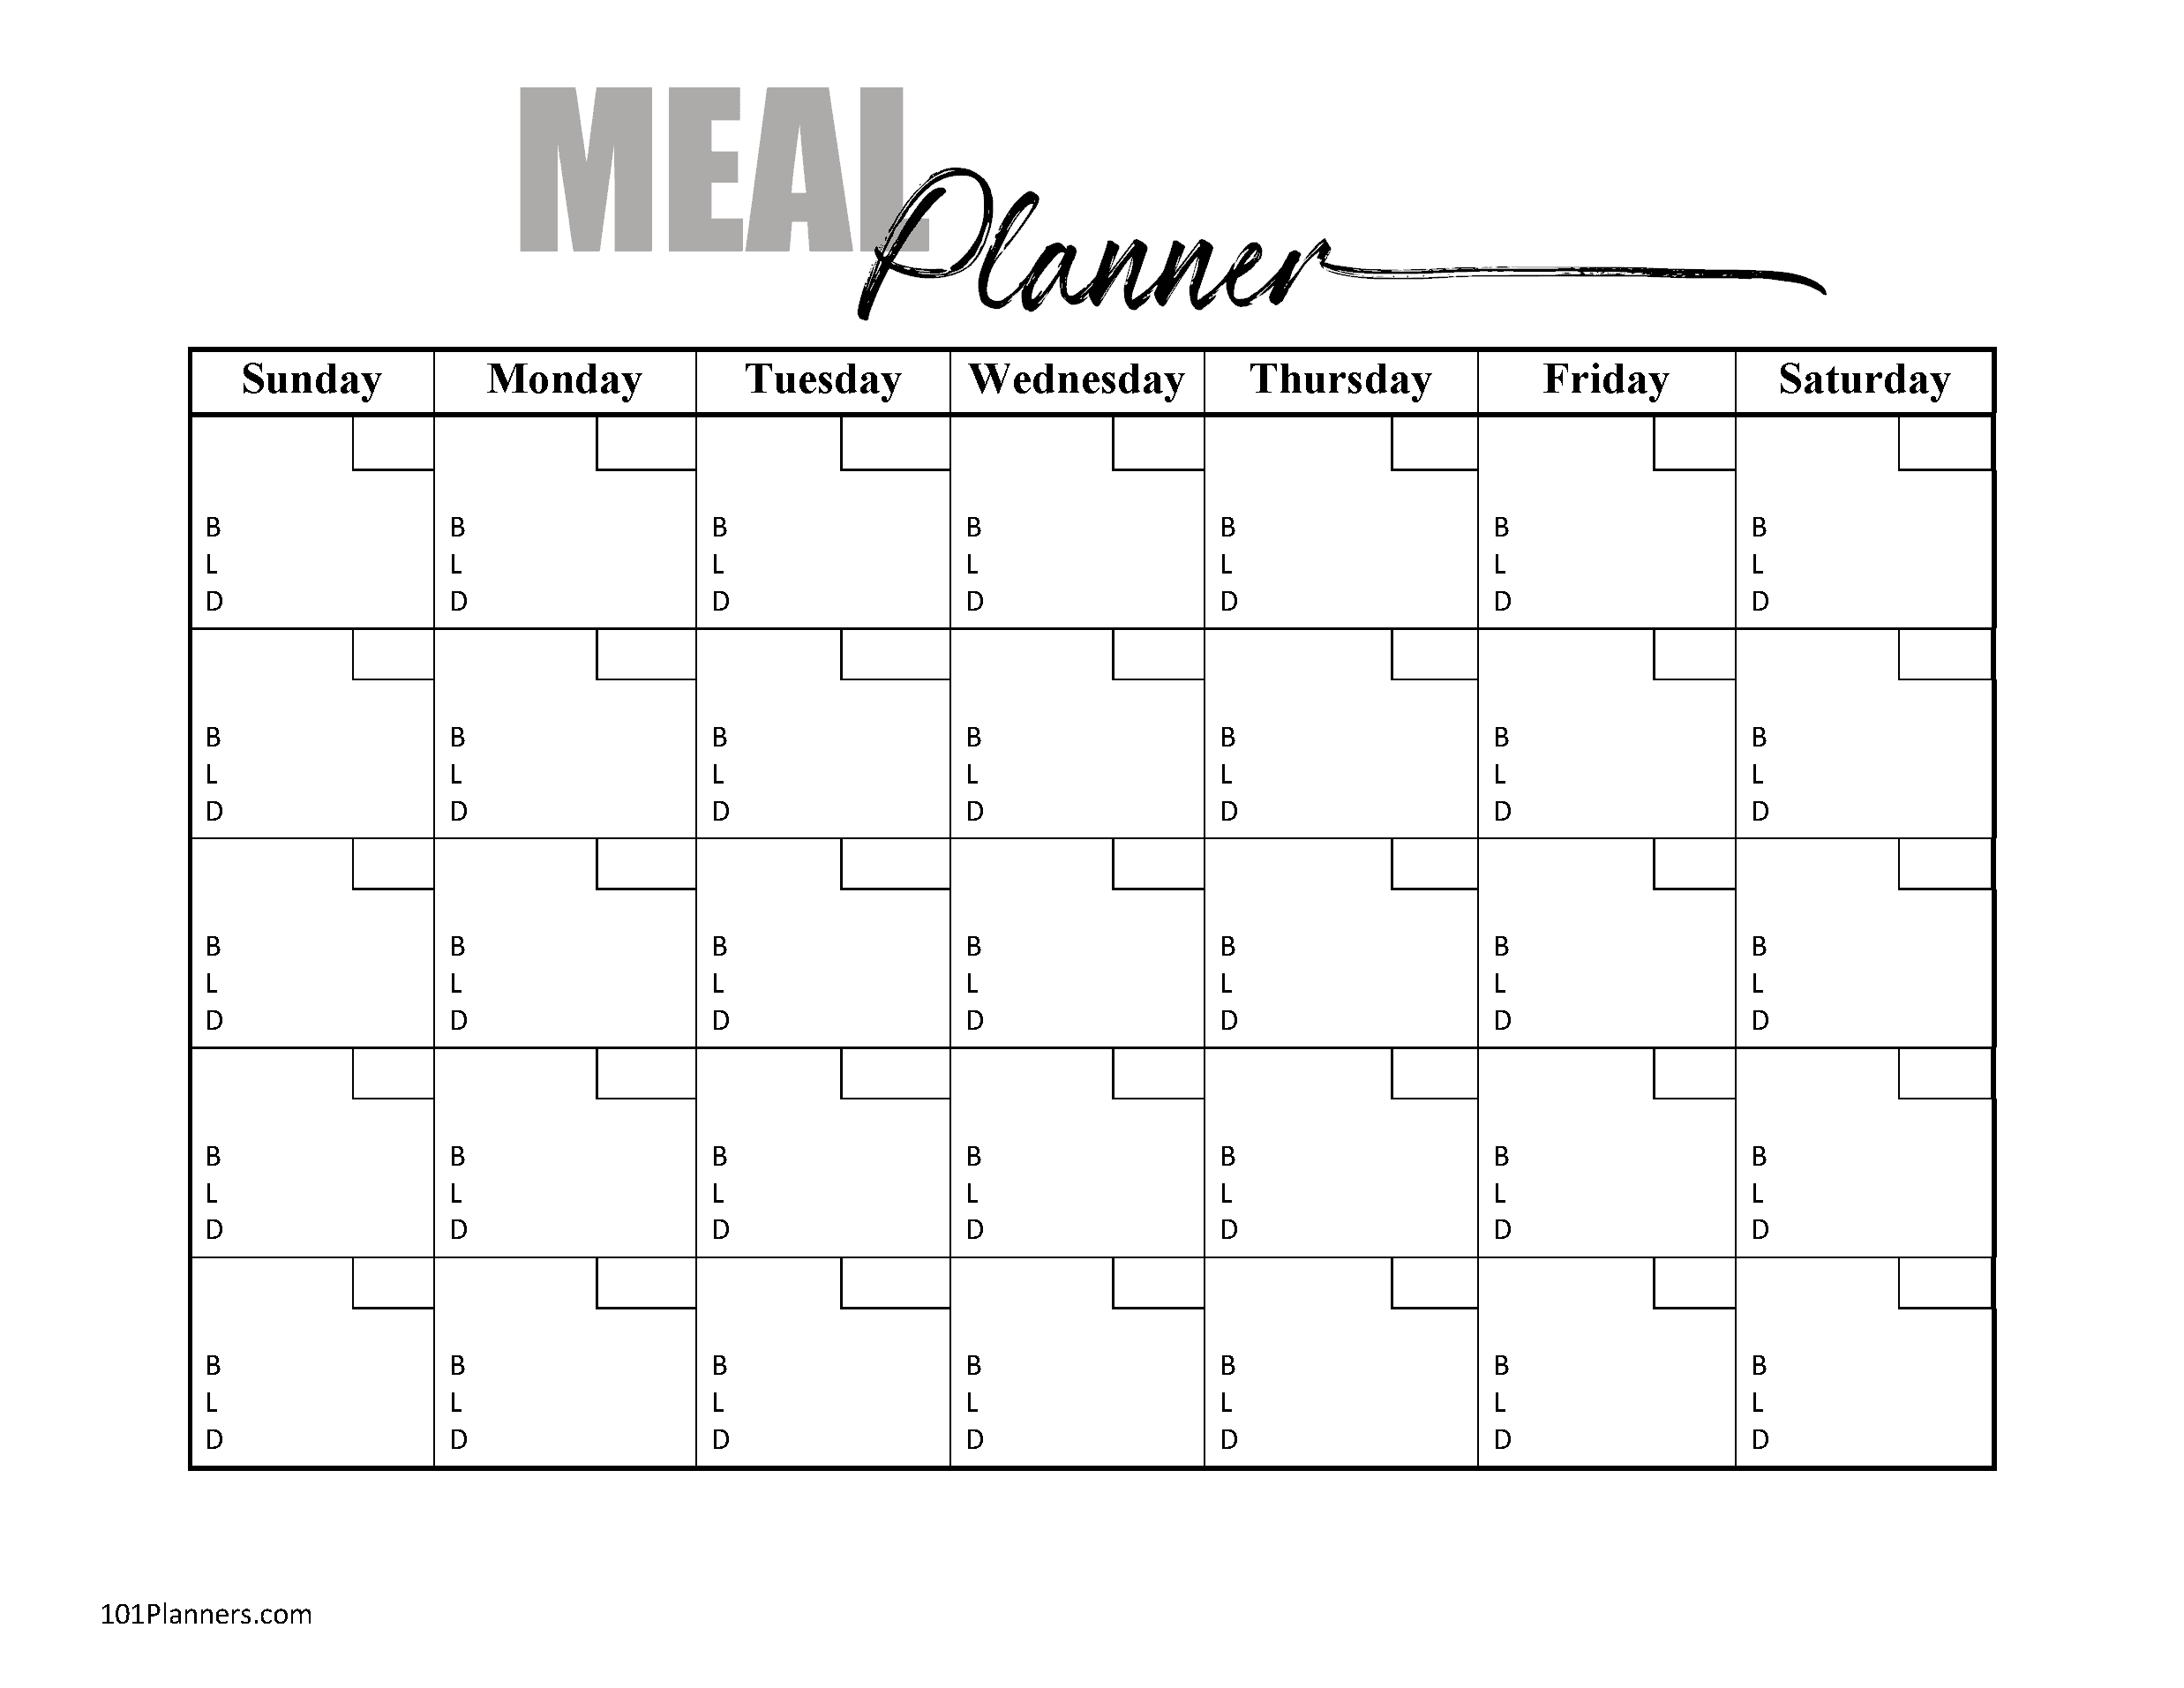 Blank Meal Plan Template from www.101planners.com